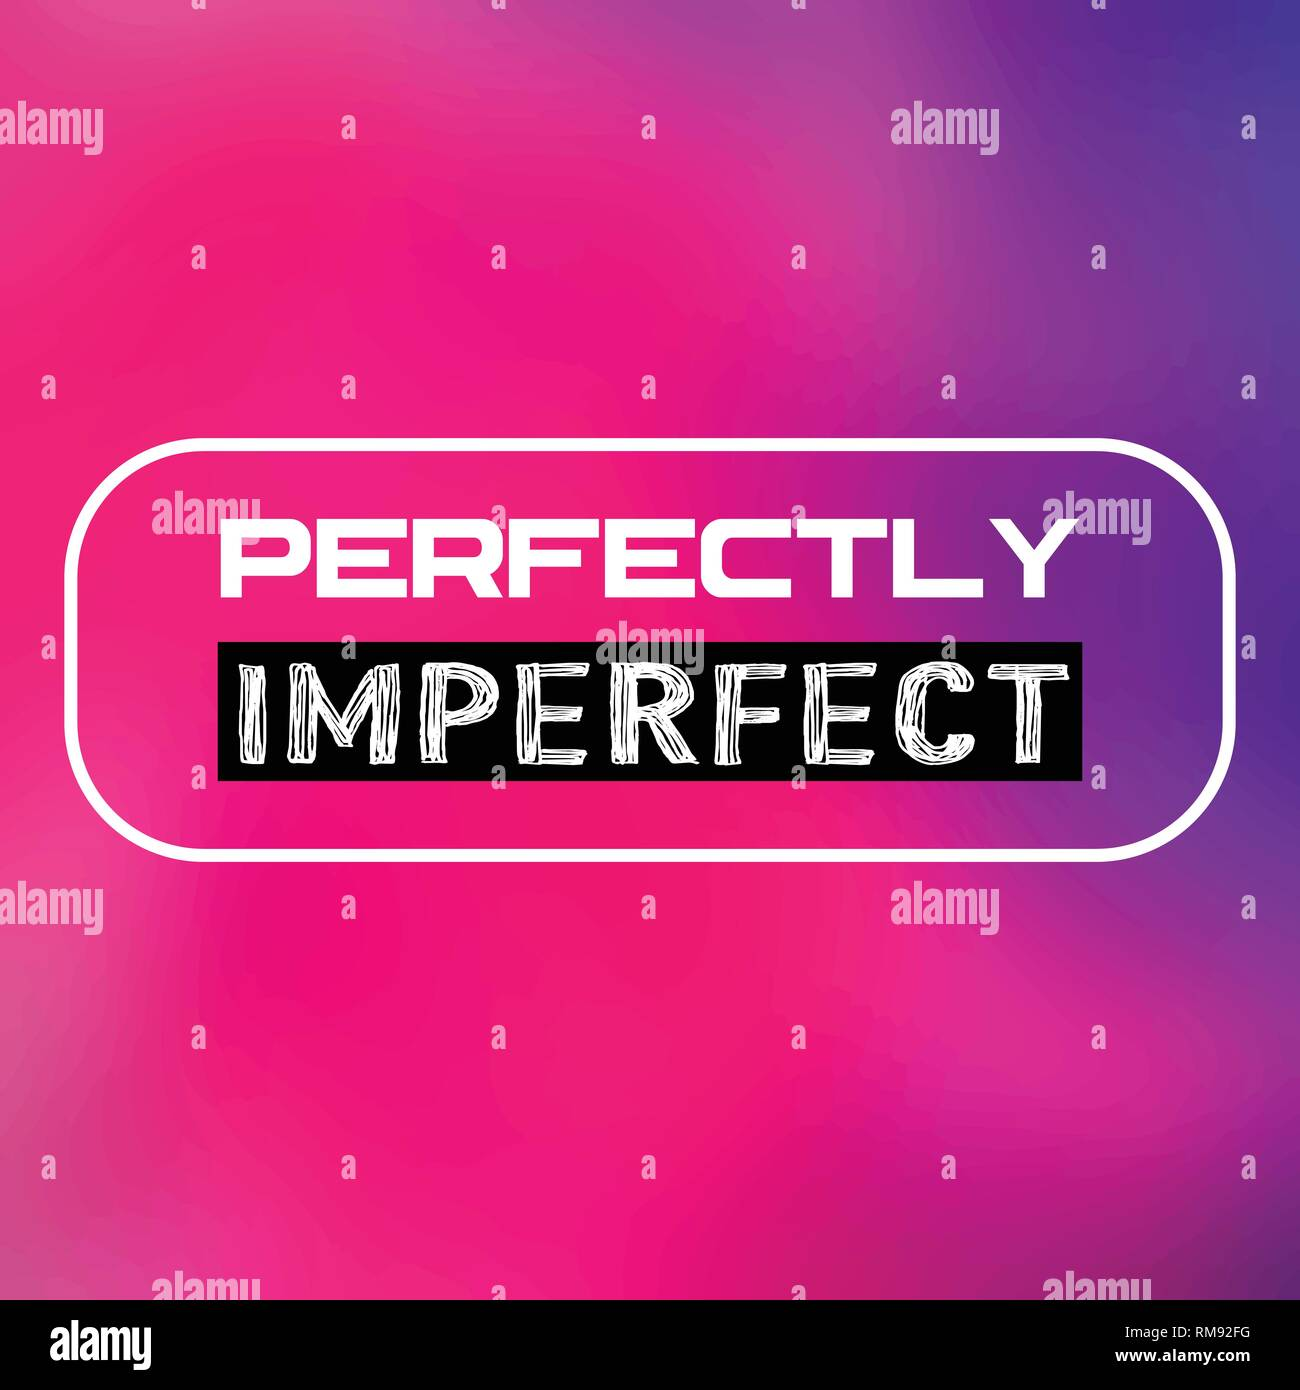 perfectly imperfect life quote modern background vector